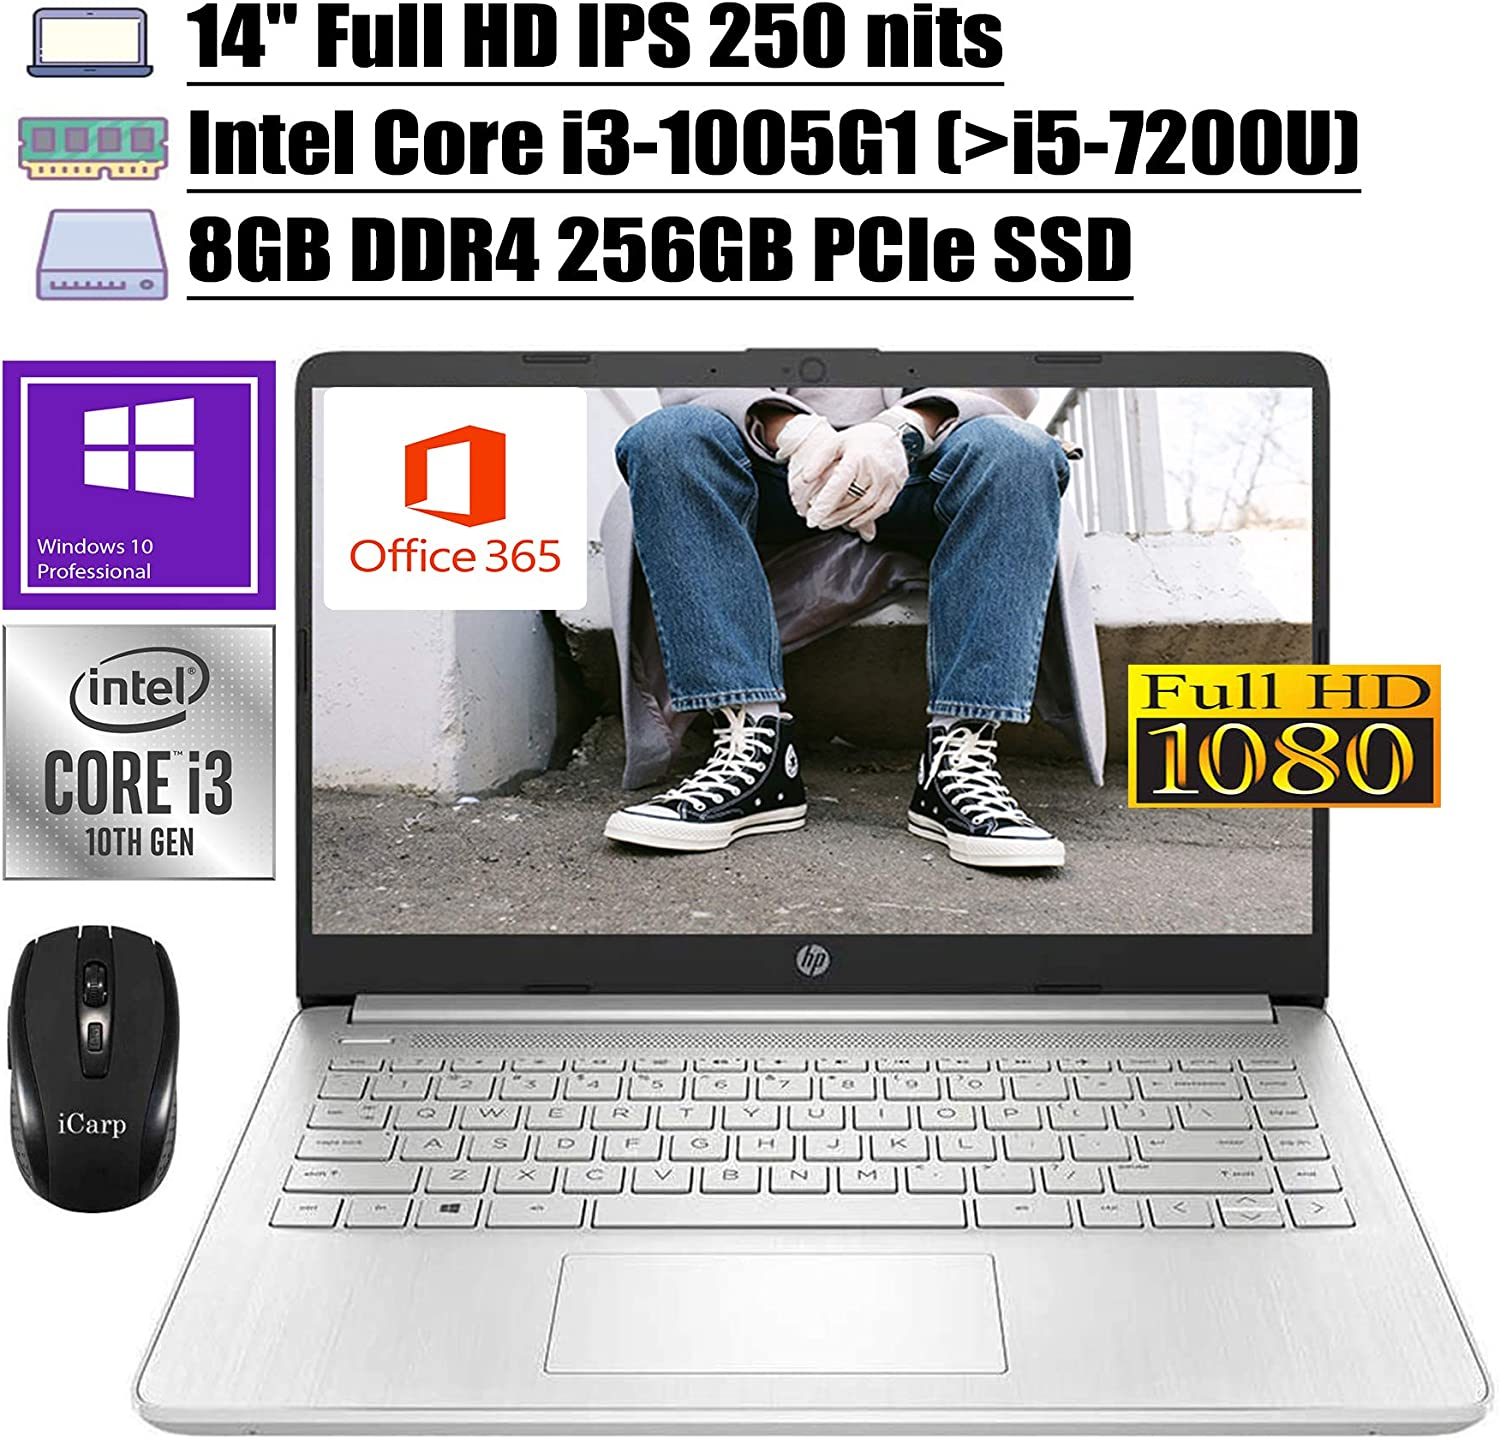 "2020 Latest Flagship HP 14 Laptop Computer 14"" Full HD IPS 250 nits 10th Gen Intel Core i3-1005G1 (Beats i5-7200U) 8GB DDR4 256GB PCIe SSD Backlit USB-C Office 365 Win 10 Pro + iCarp Wireless Mouse"